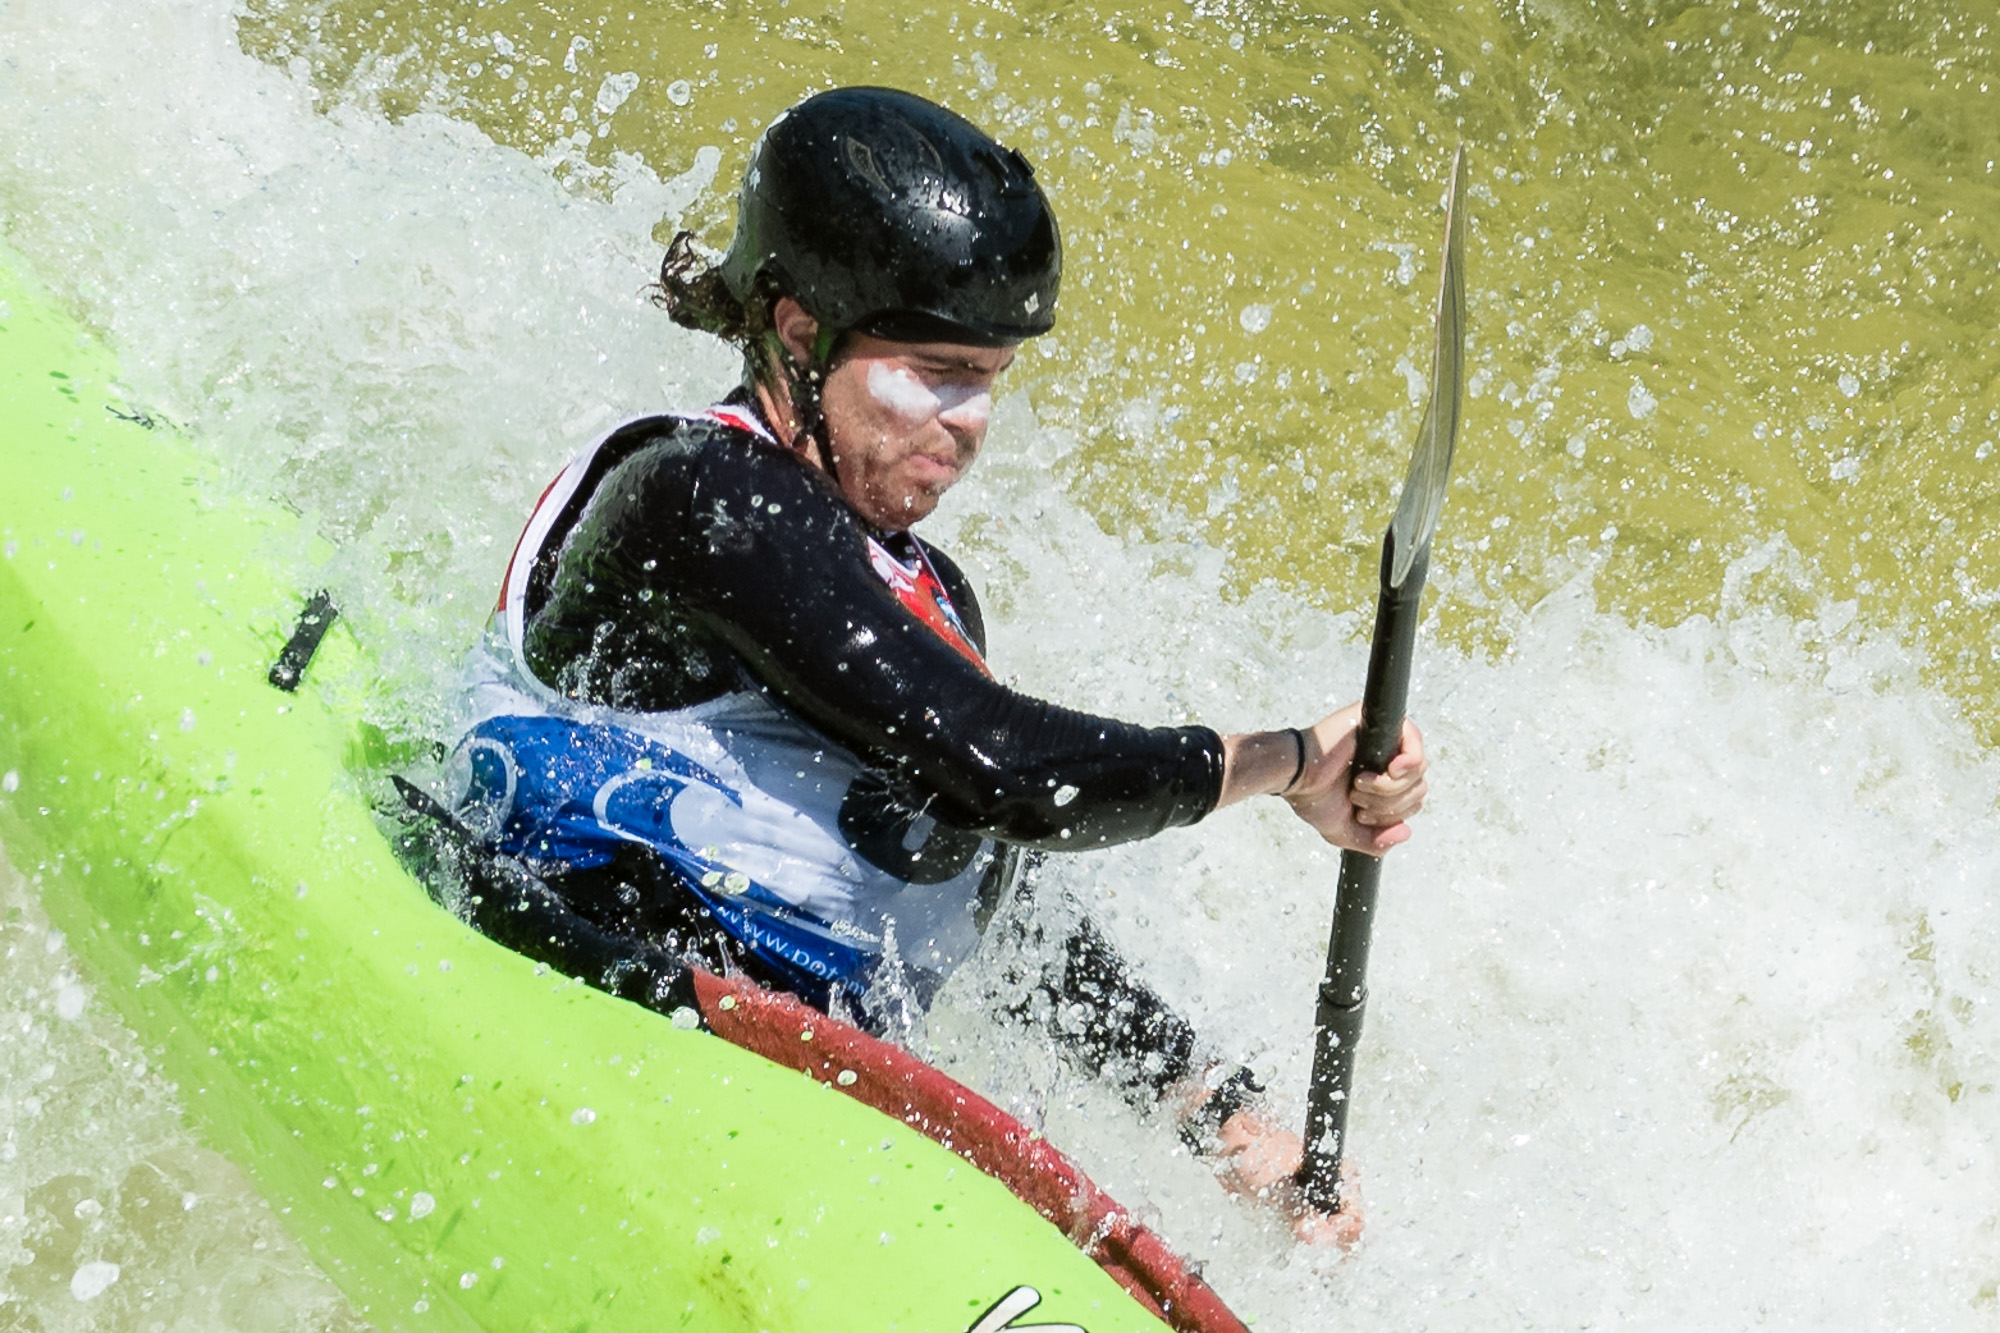 You can watch and capture some great facial expressions at whitewater sports events.